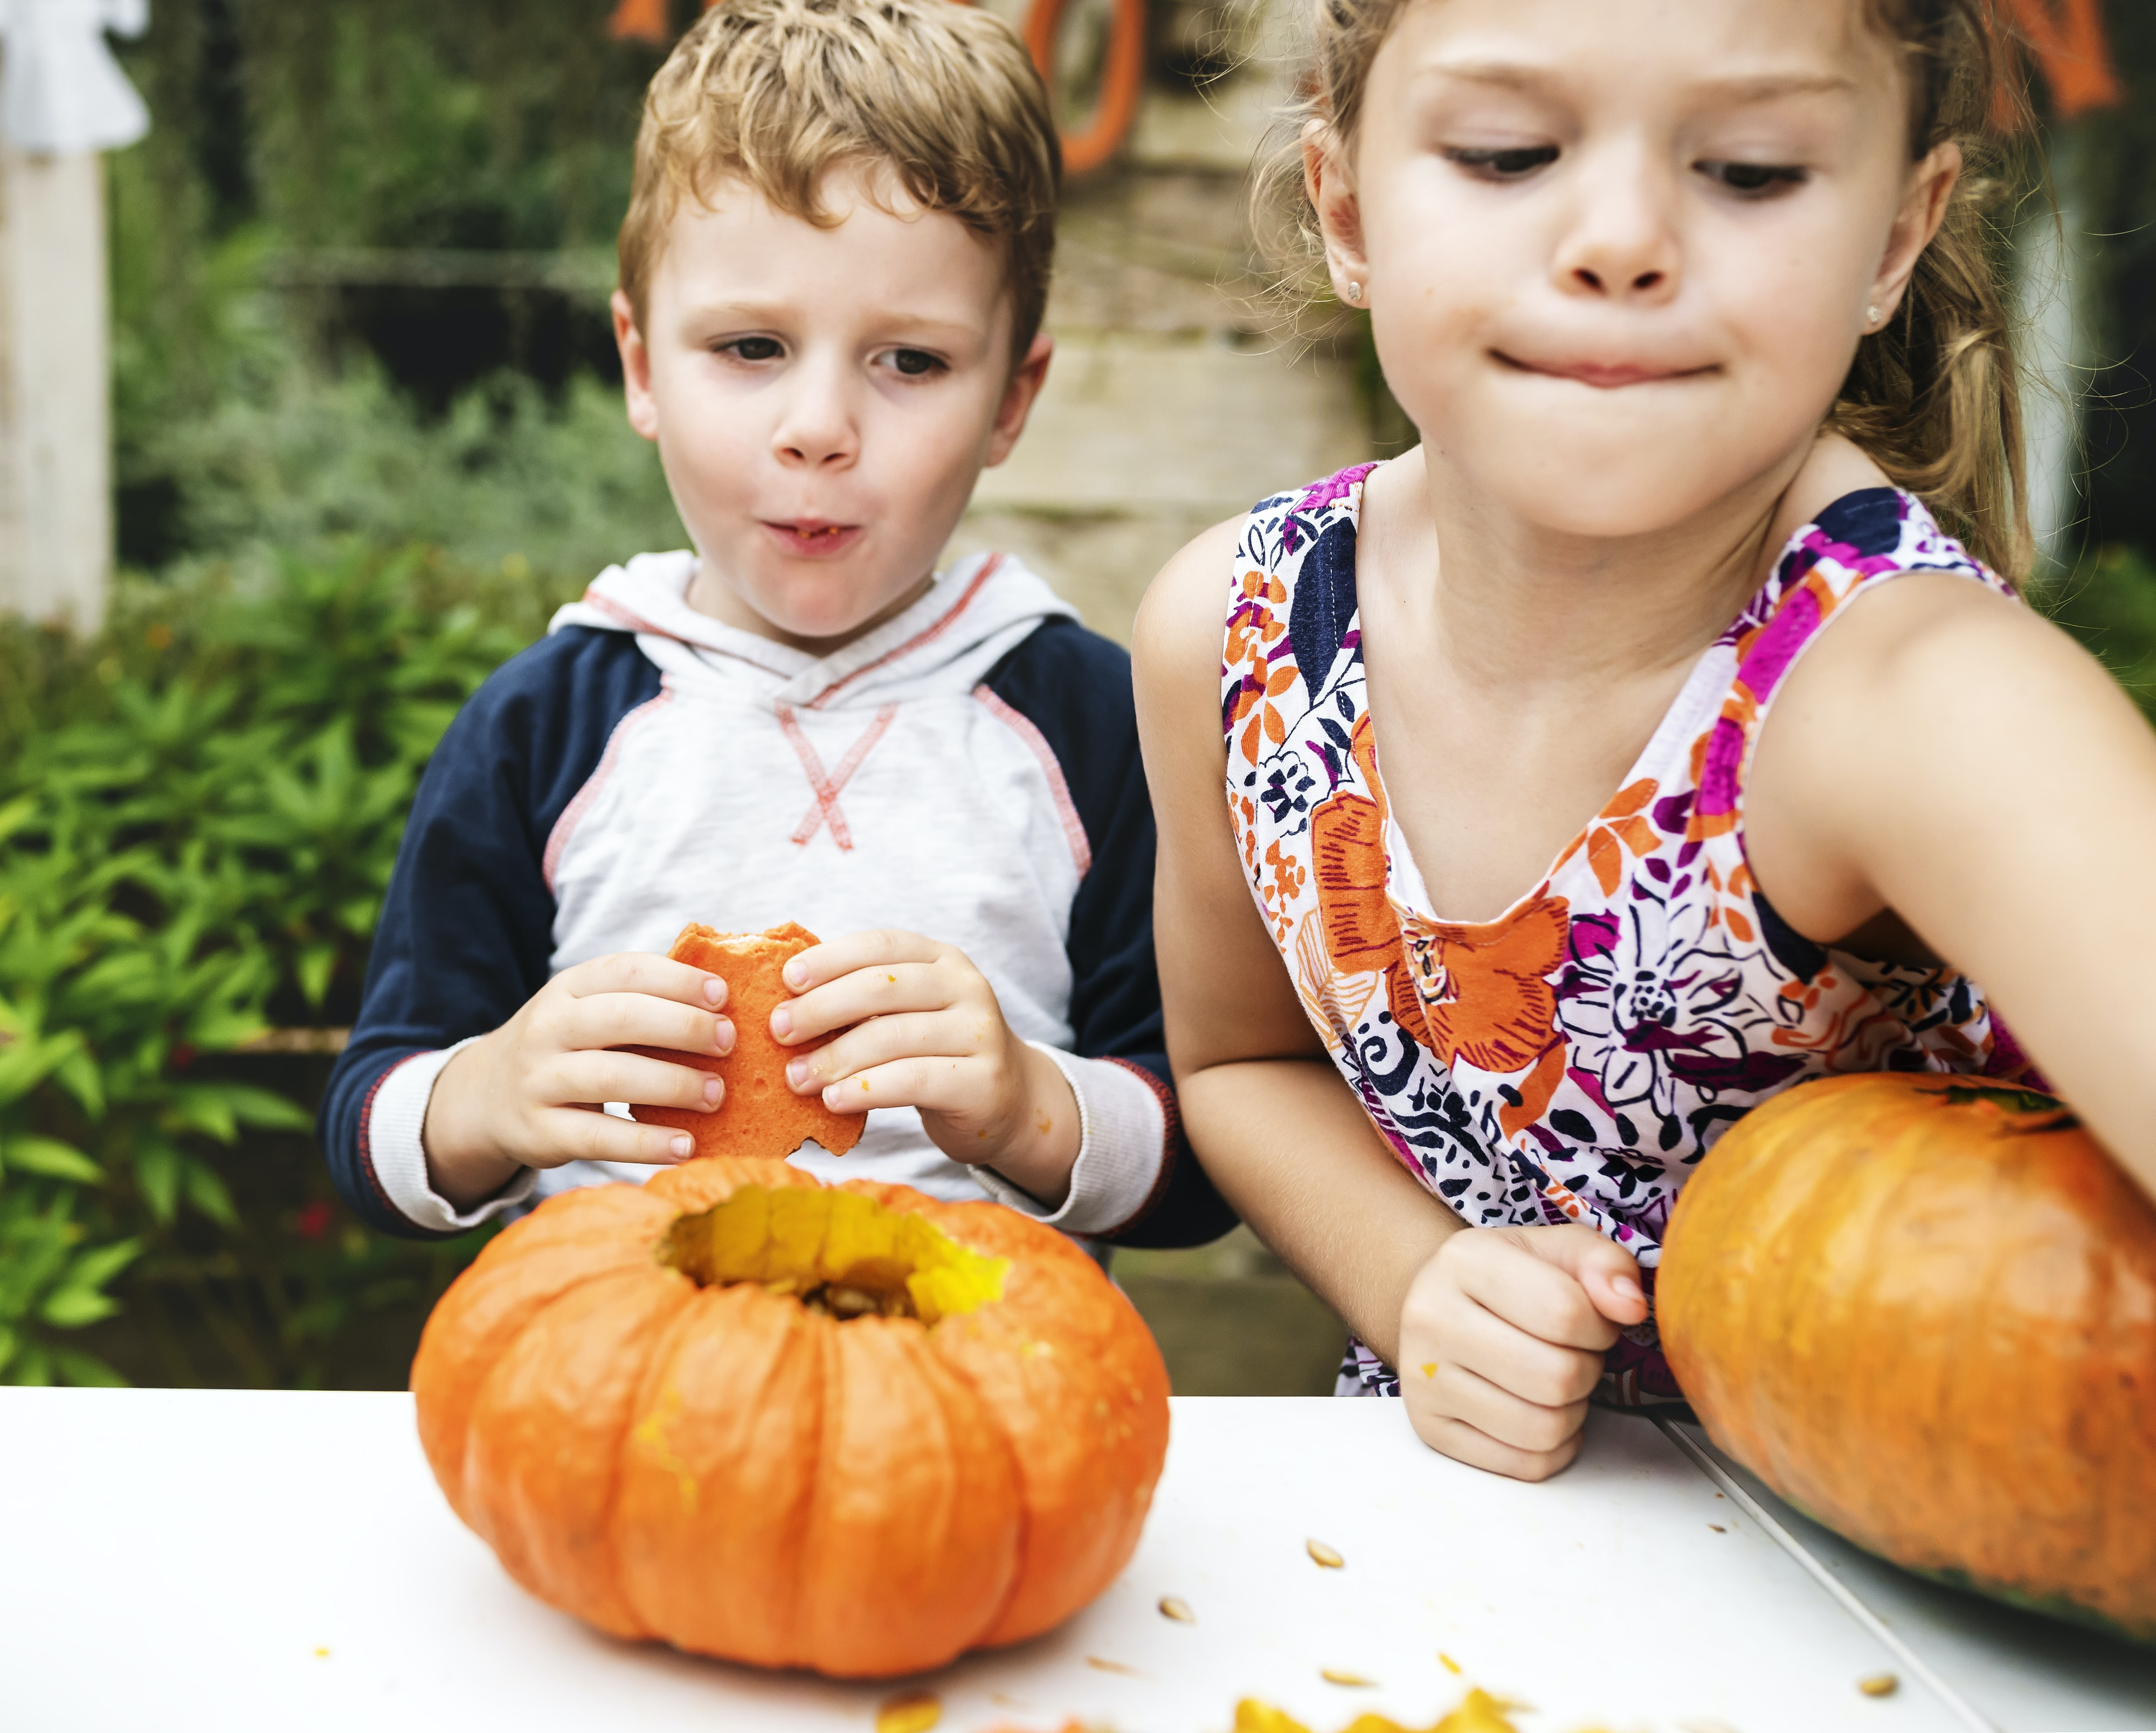 boy and girl playing pumpkin during daytime